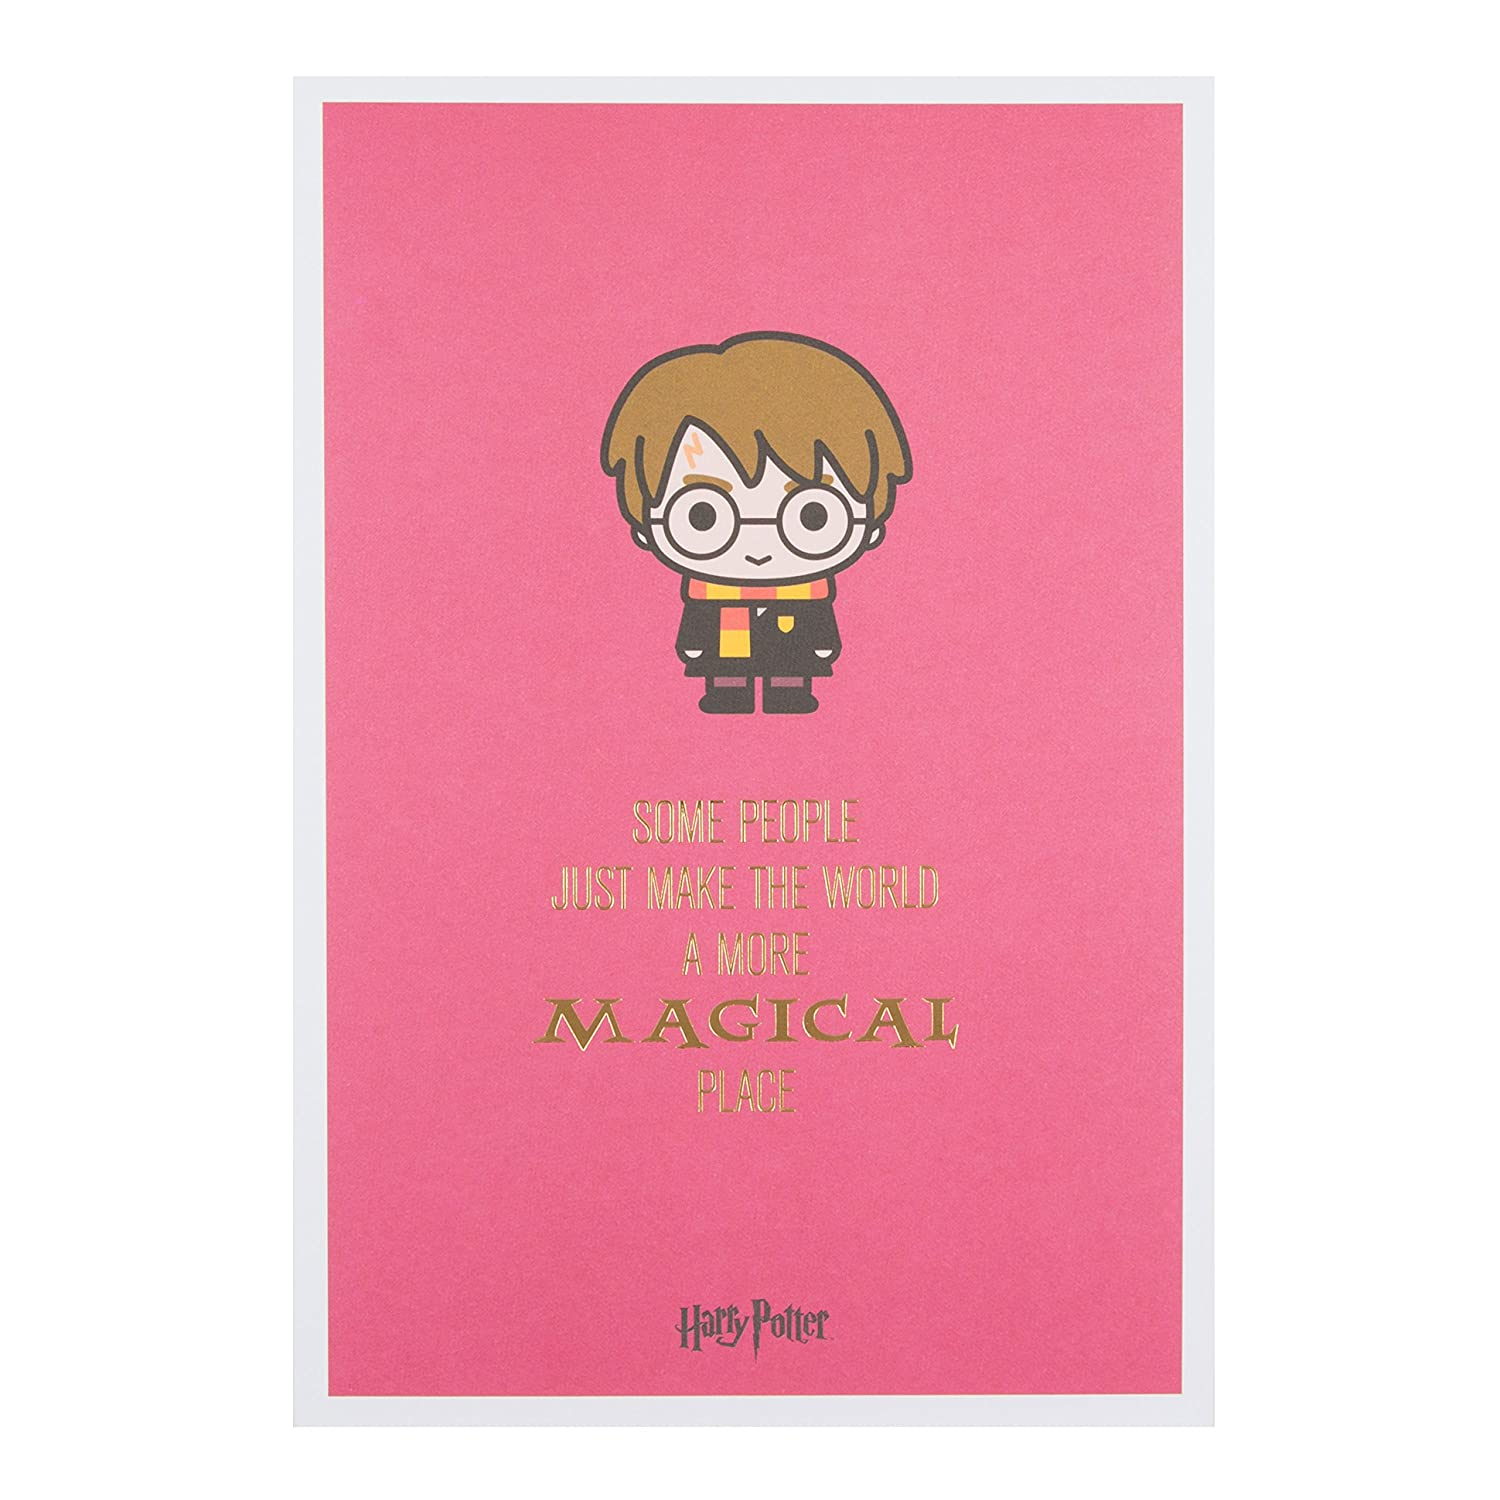 Harry Potter Birthday Card.Hallmark Magical Place Harry Potter Birthday Card